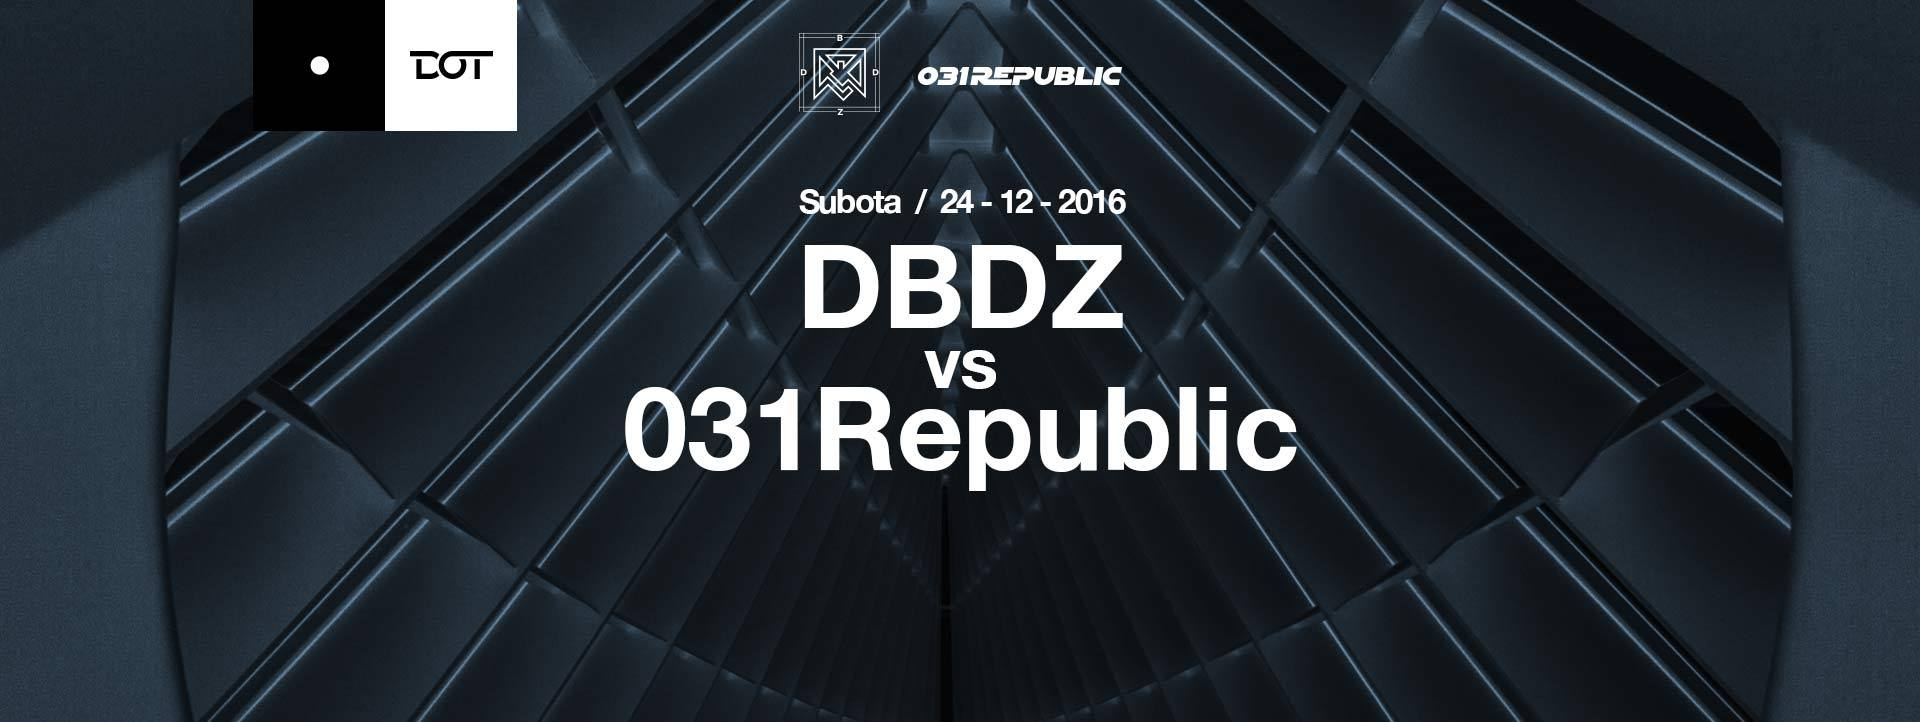 DBDZ vs 031 Republic